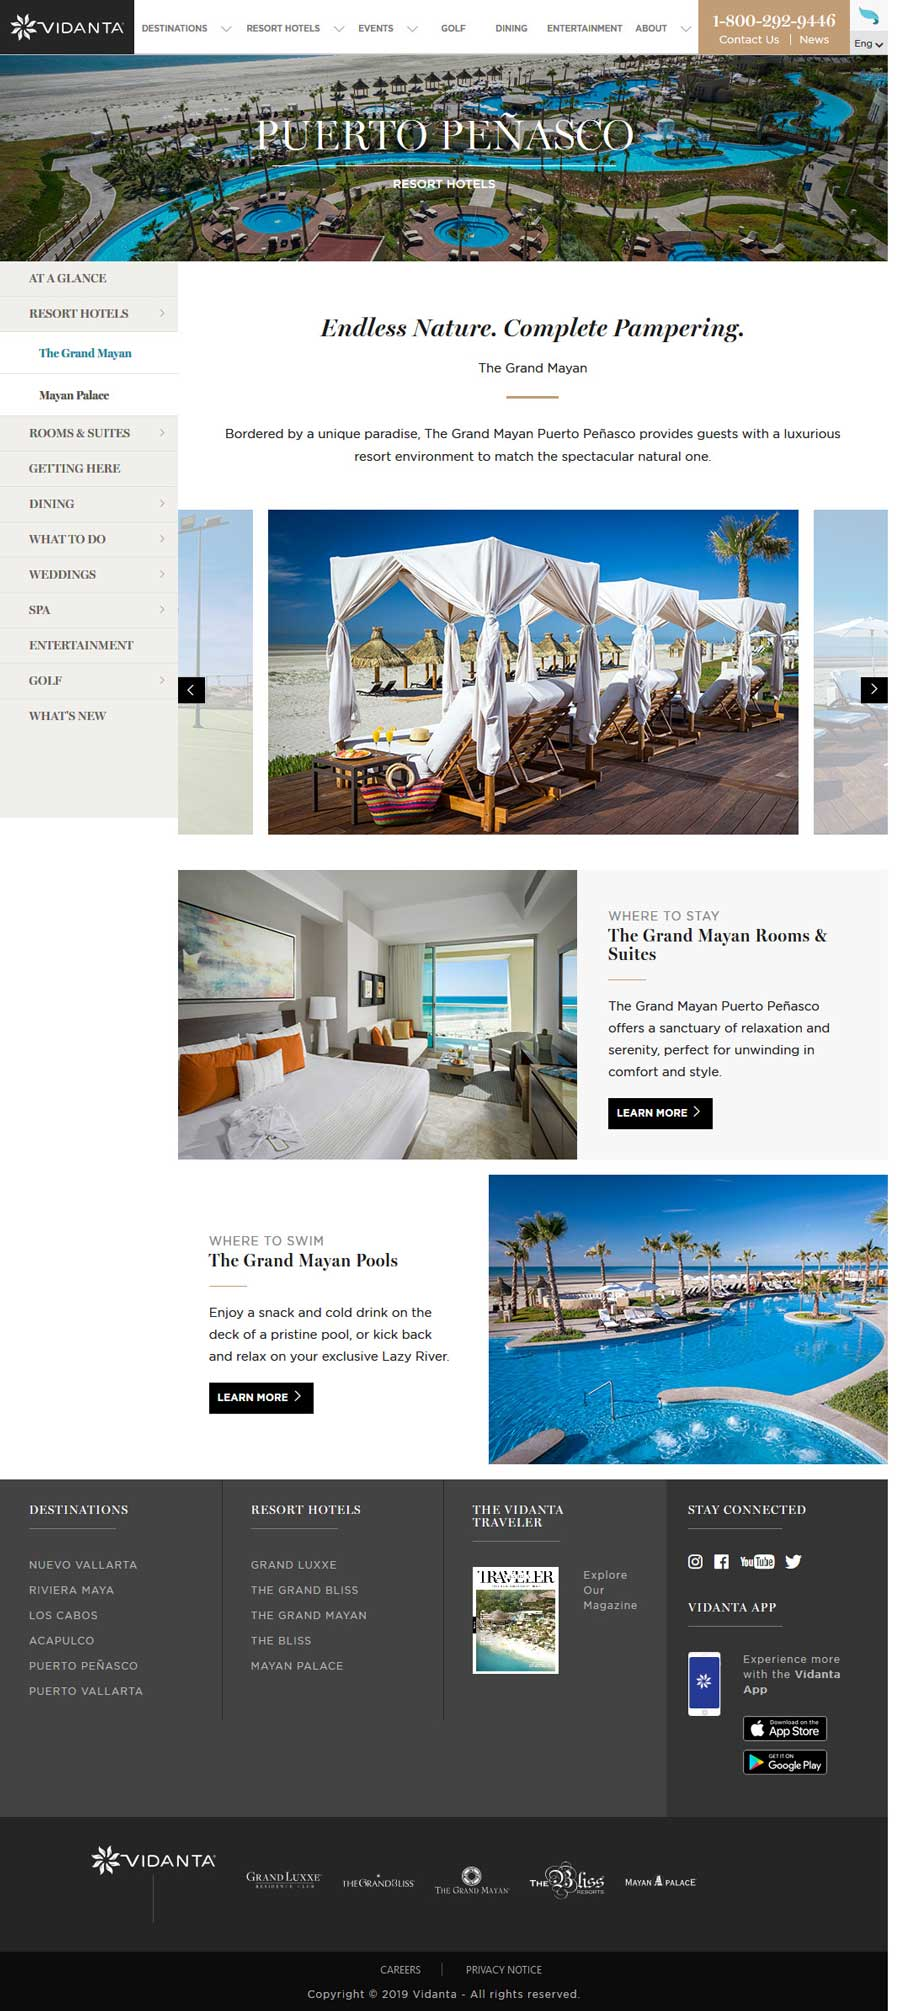 Vidanta Grand Mayan in Rocky Point Mexico (Puerto Penasco) Click the Picture to visit Vidanta's Grand Mayan Site.